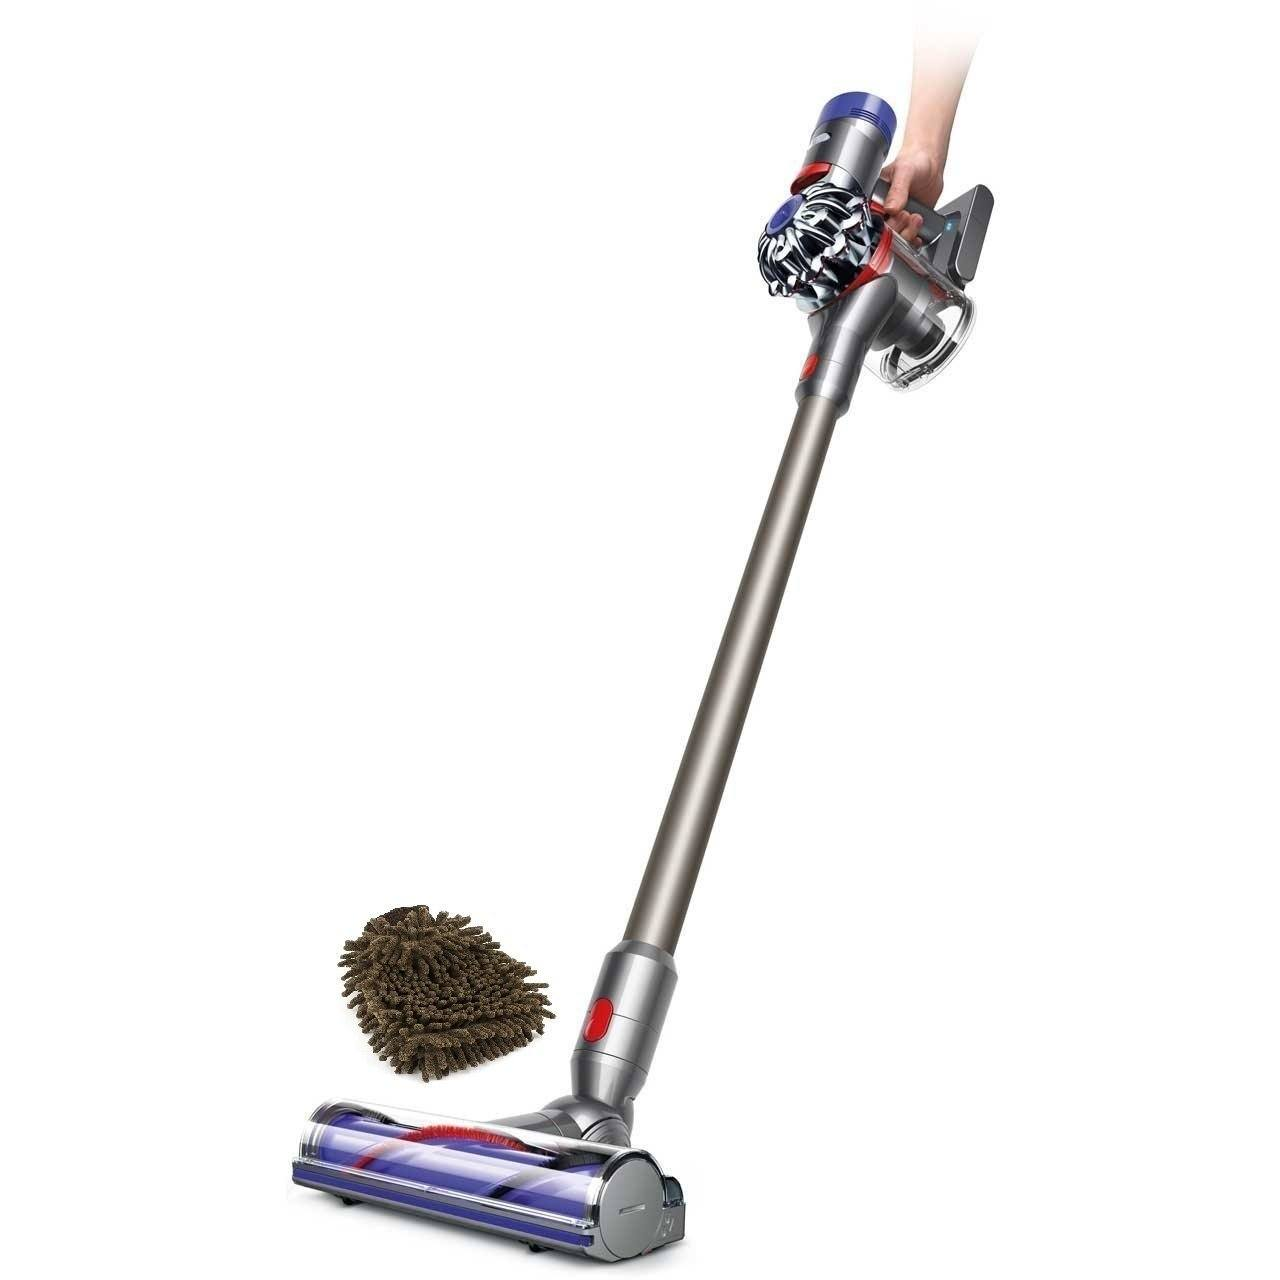 Dyson V8 Animal review